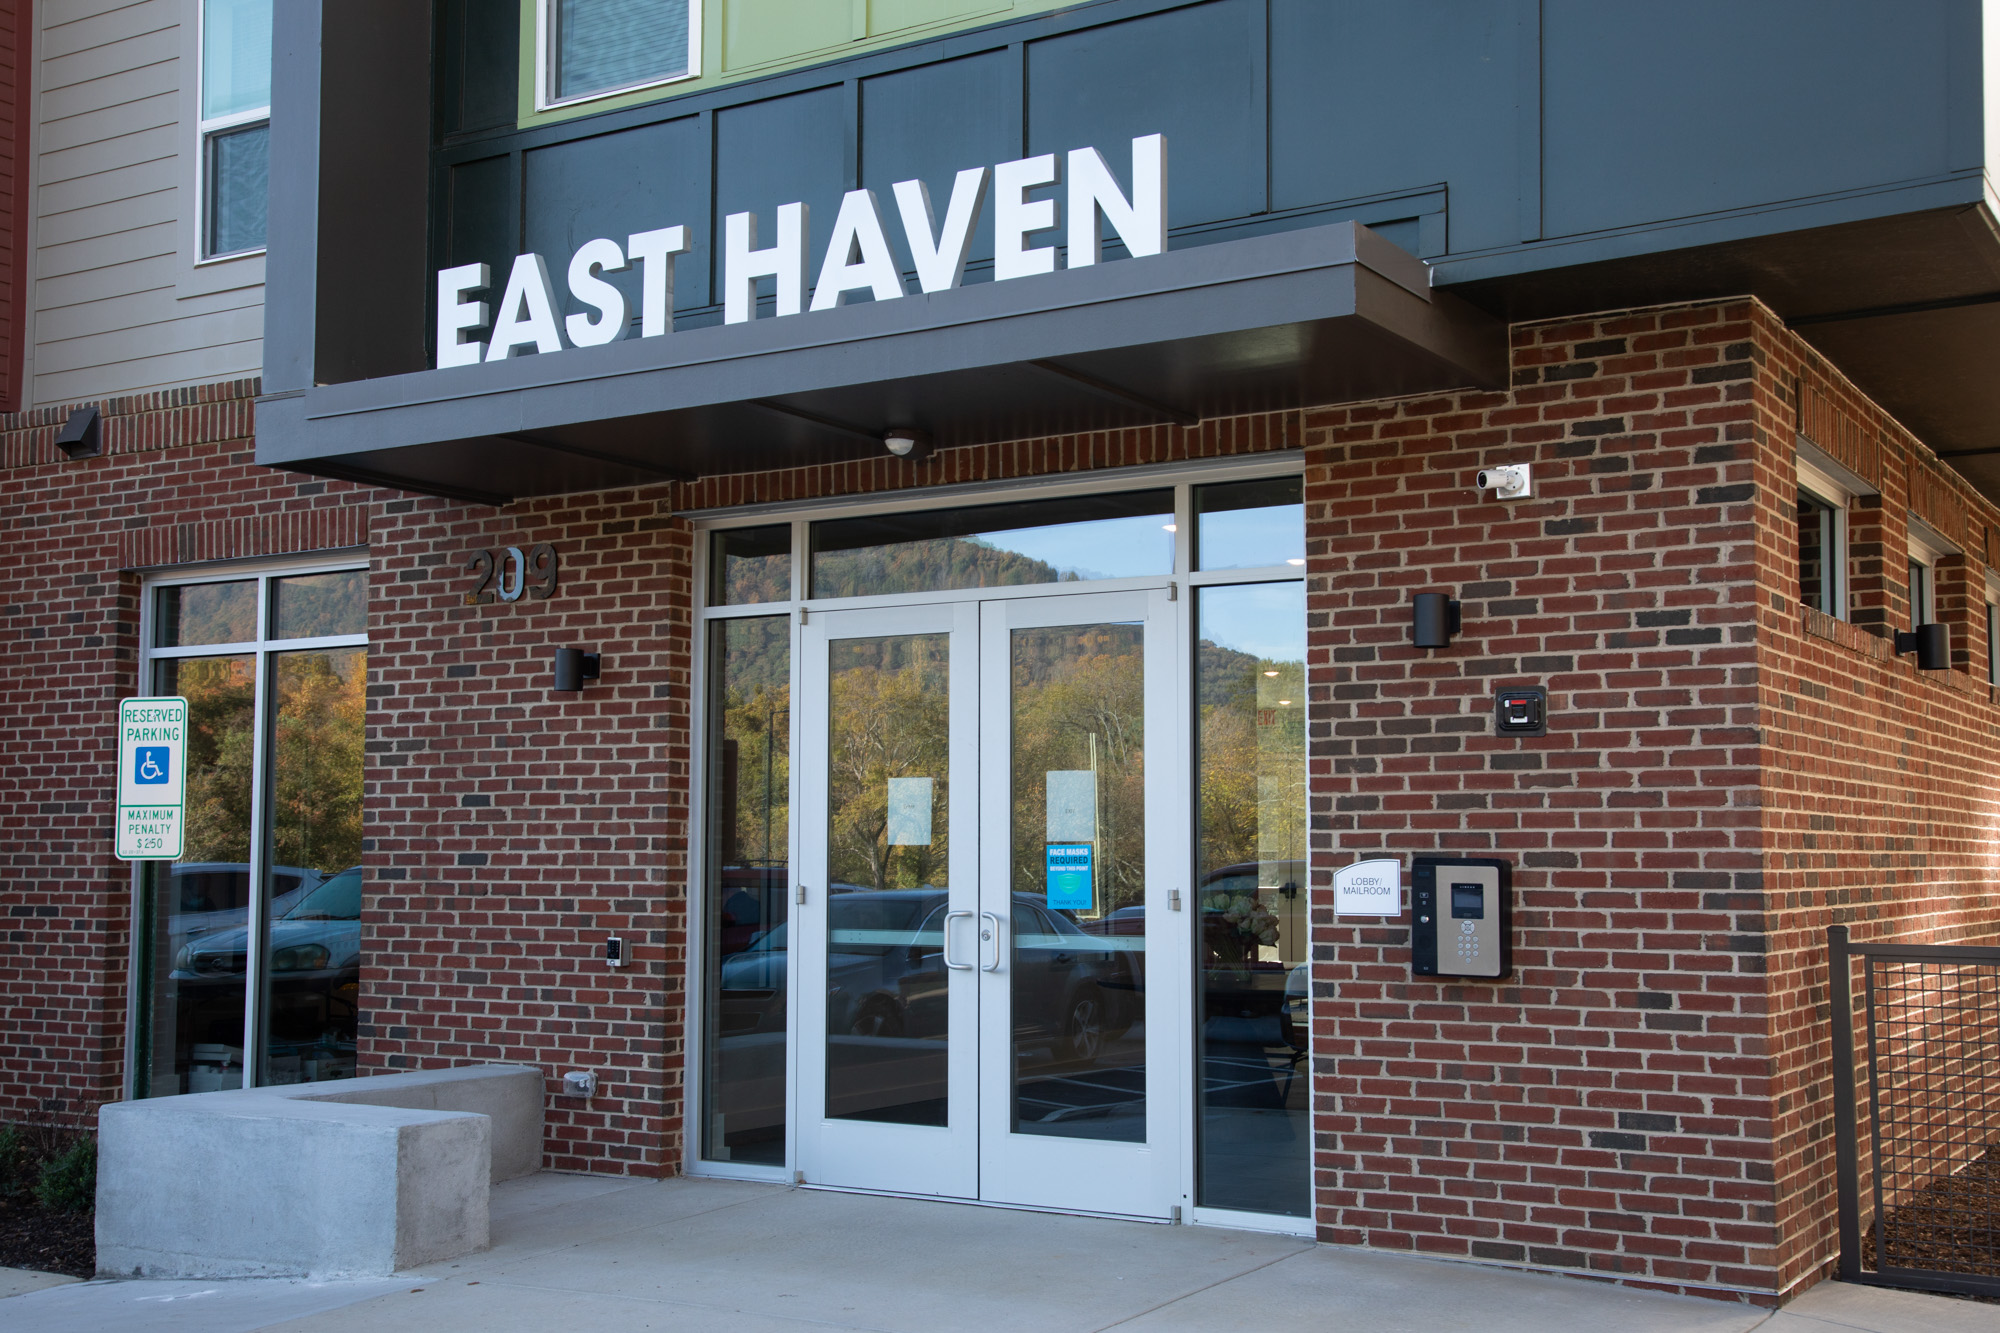 The East Haven sign welcomes guests into the lobby.